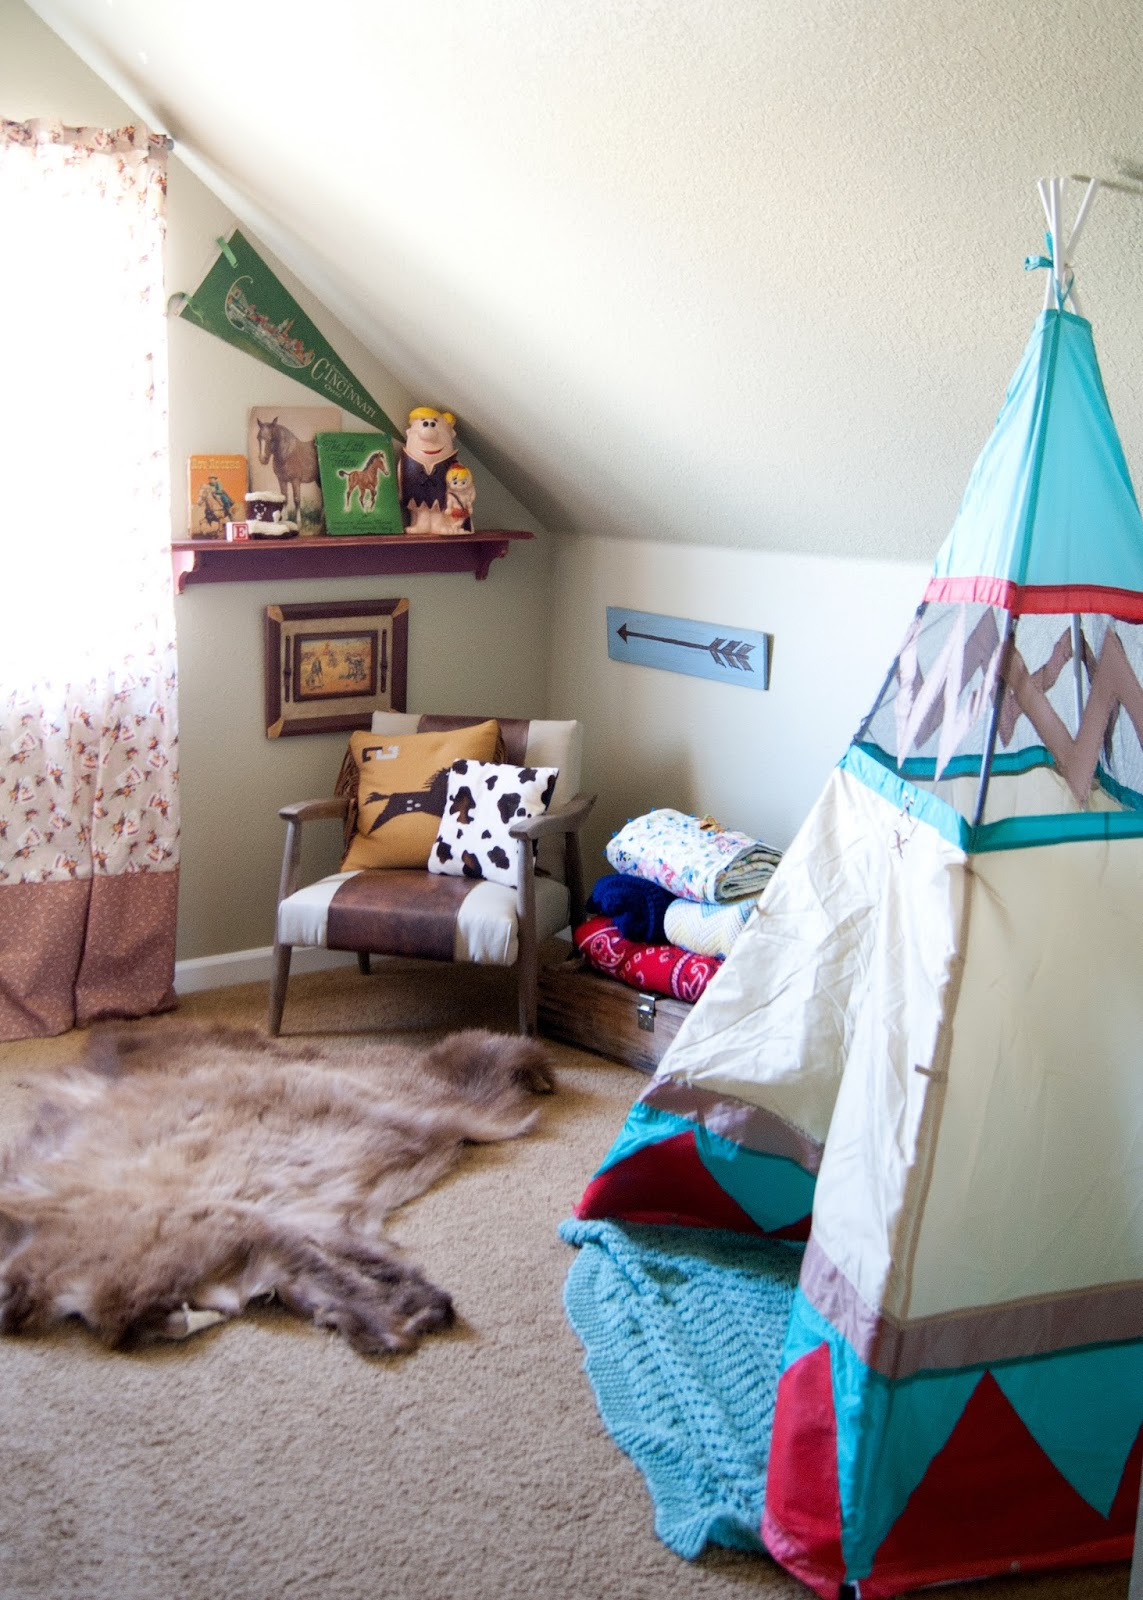 Tee pee, mid century chair and western decor